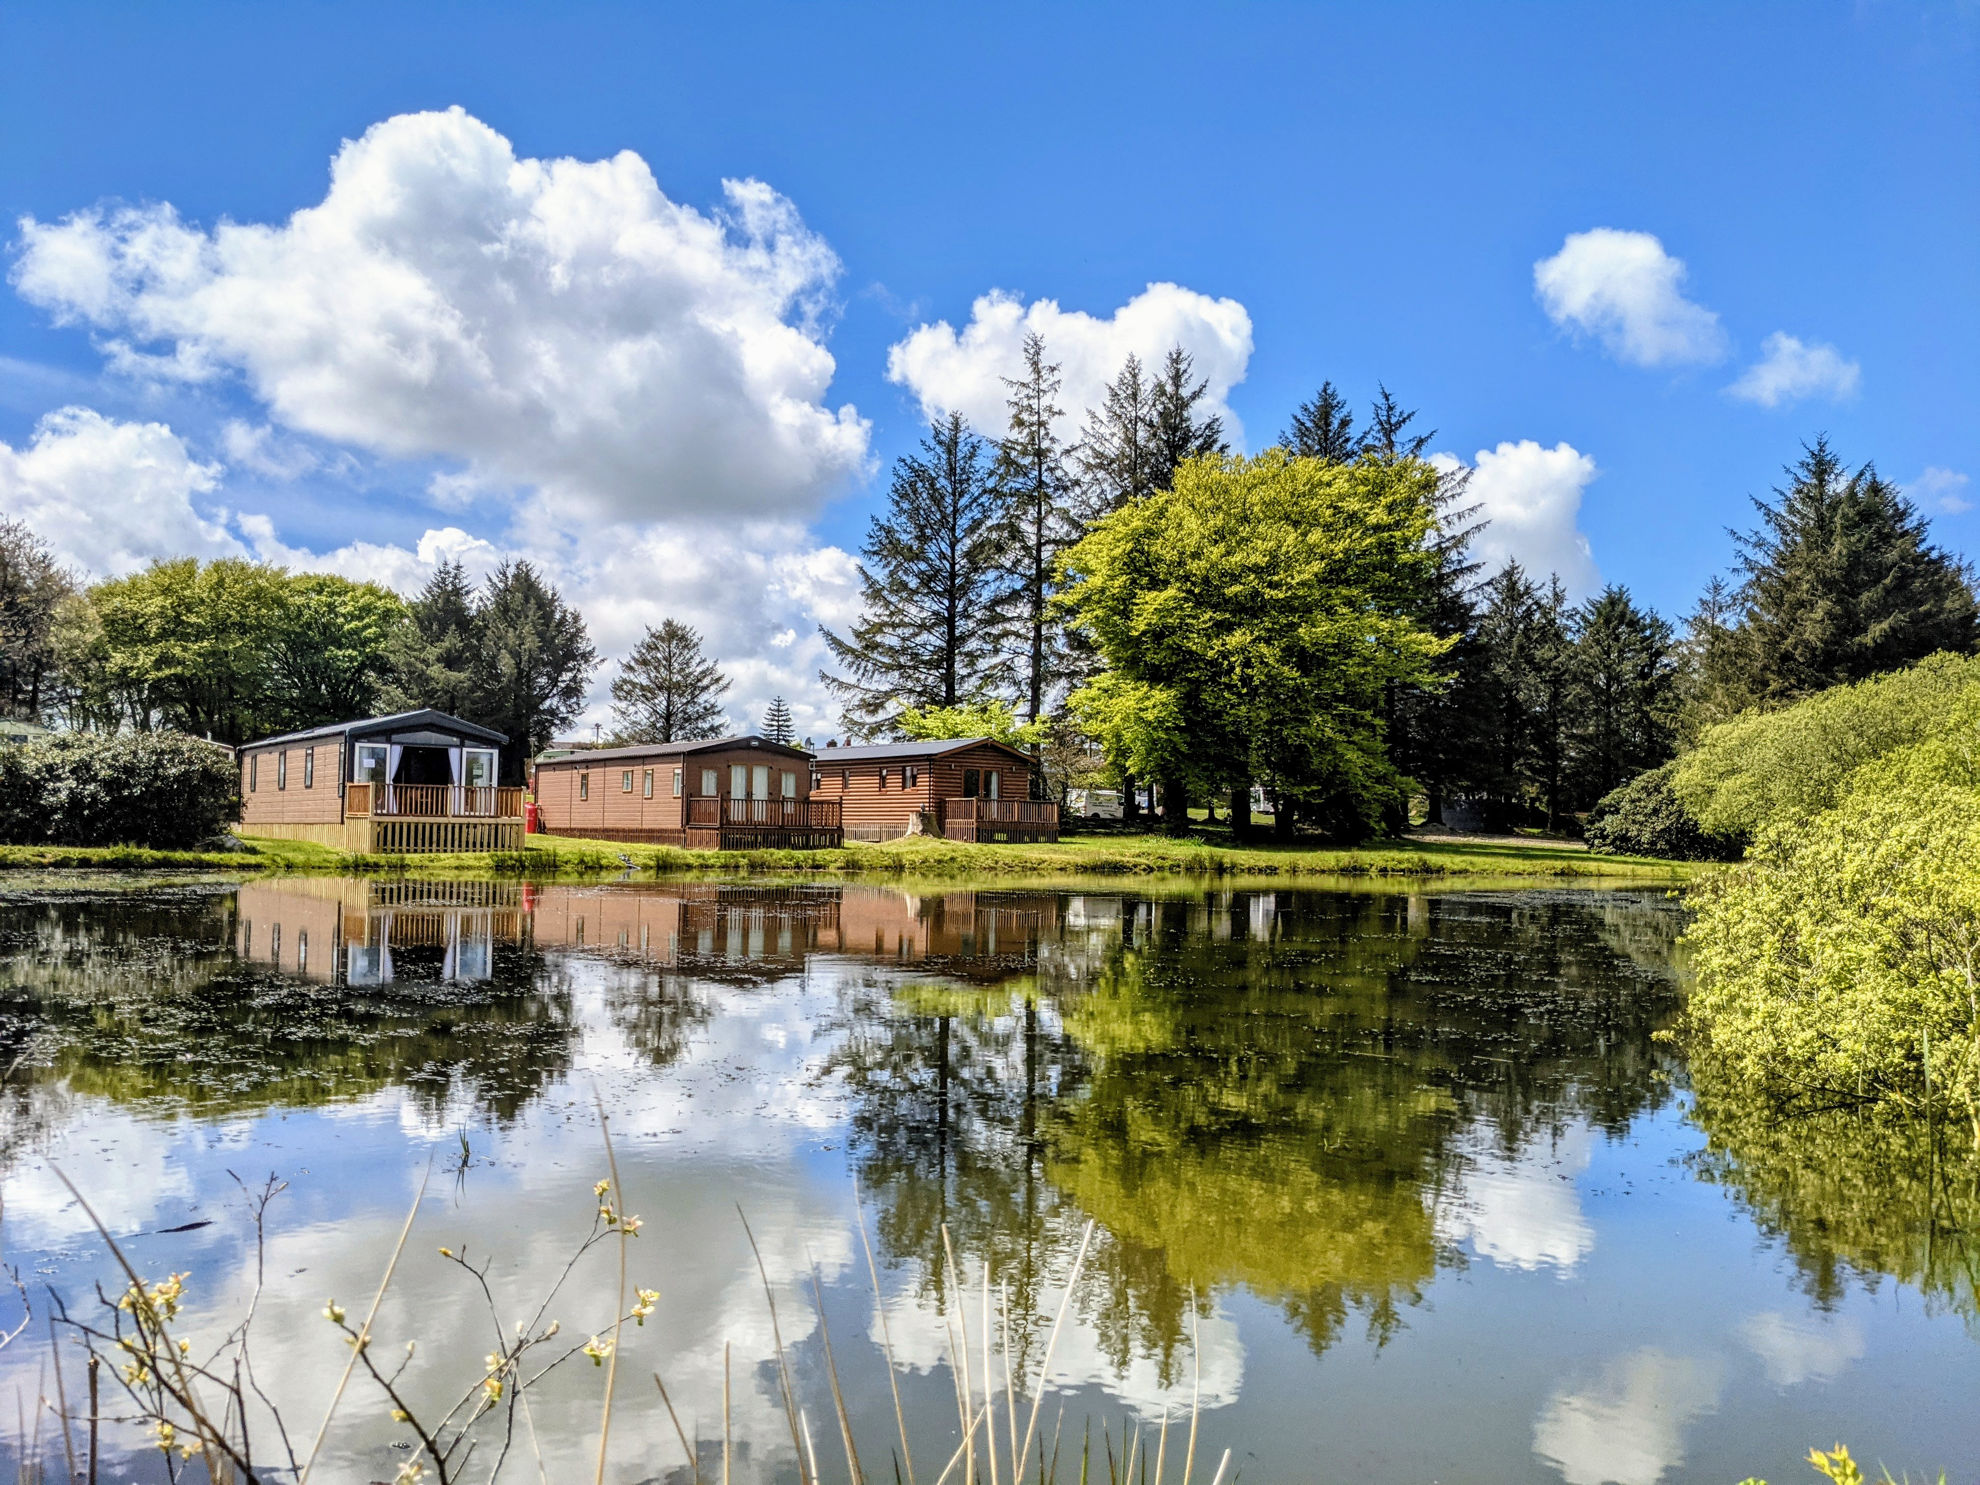 Picture of Rosebush Holiday Park